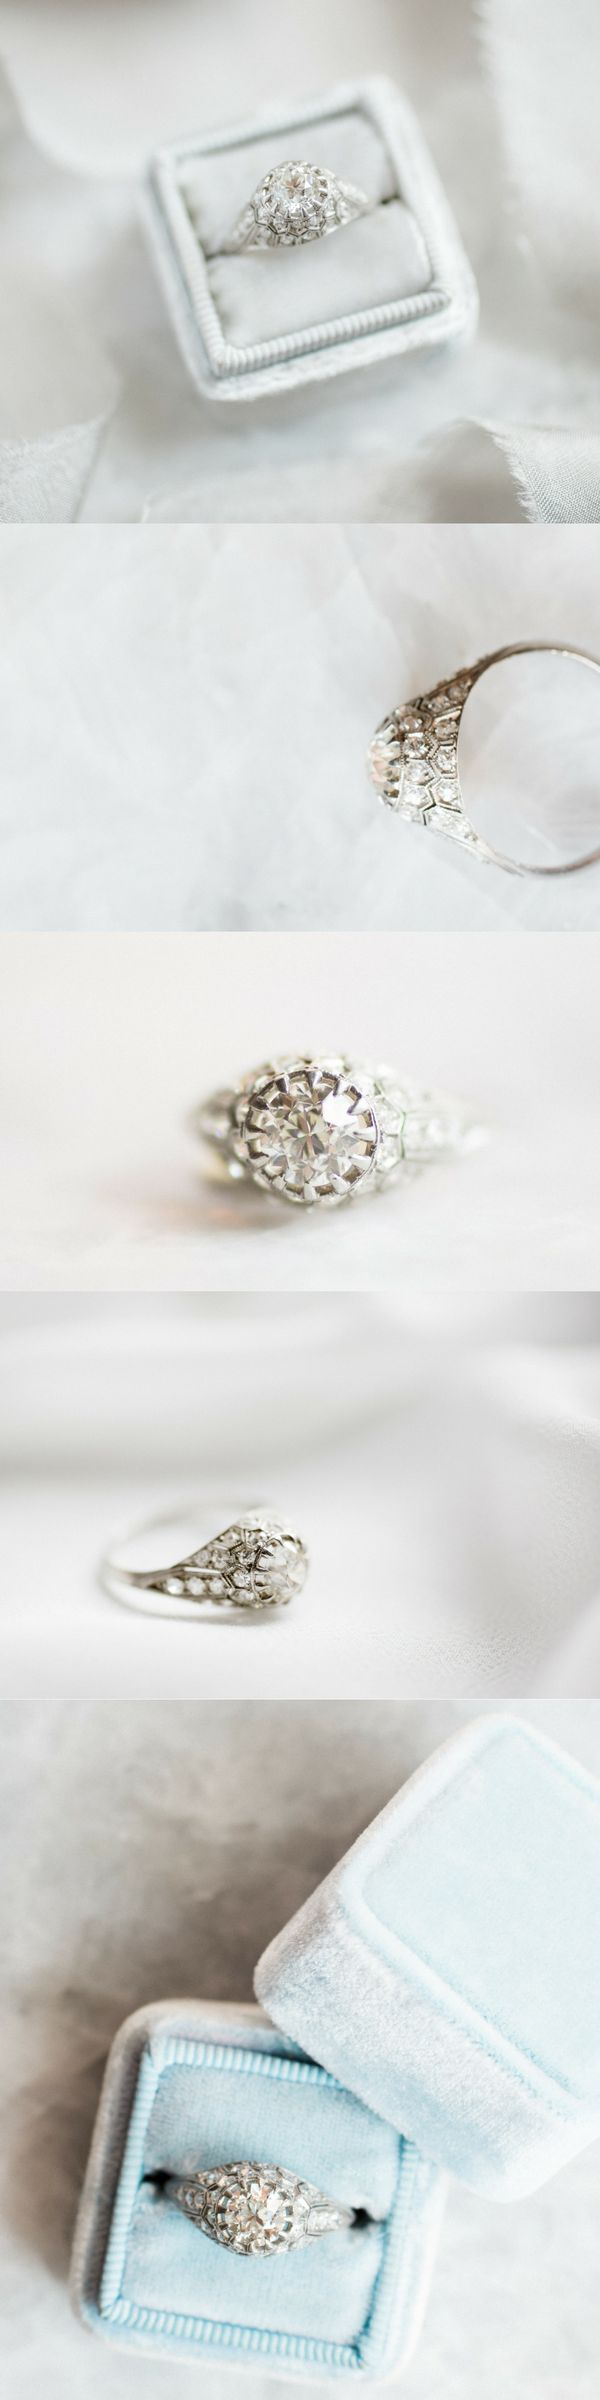 panera+breakfast+sandwiches+nutrition cheap vintage wedding rings Vintage engagement rings victoria bc A Seriously Amazing One Of A Kind Vintage Engagement Ring